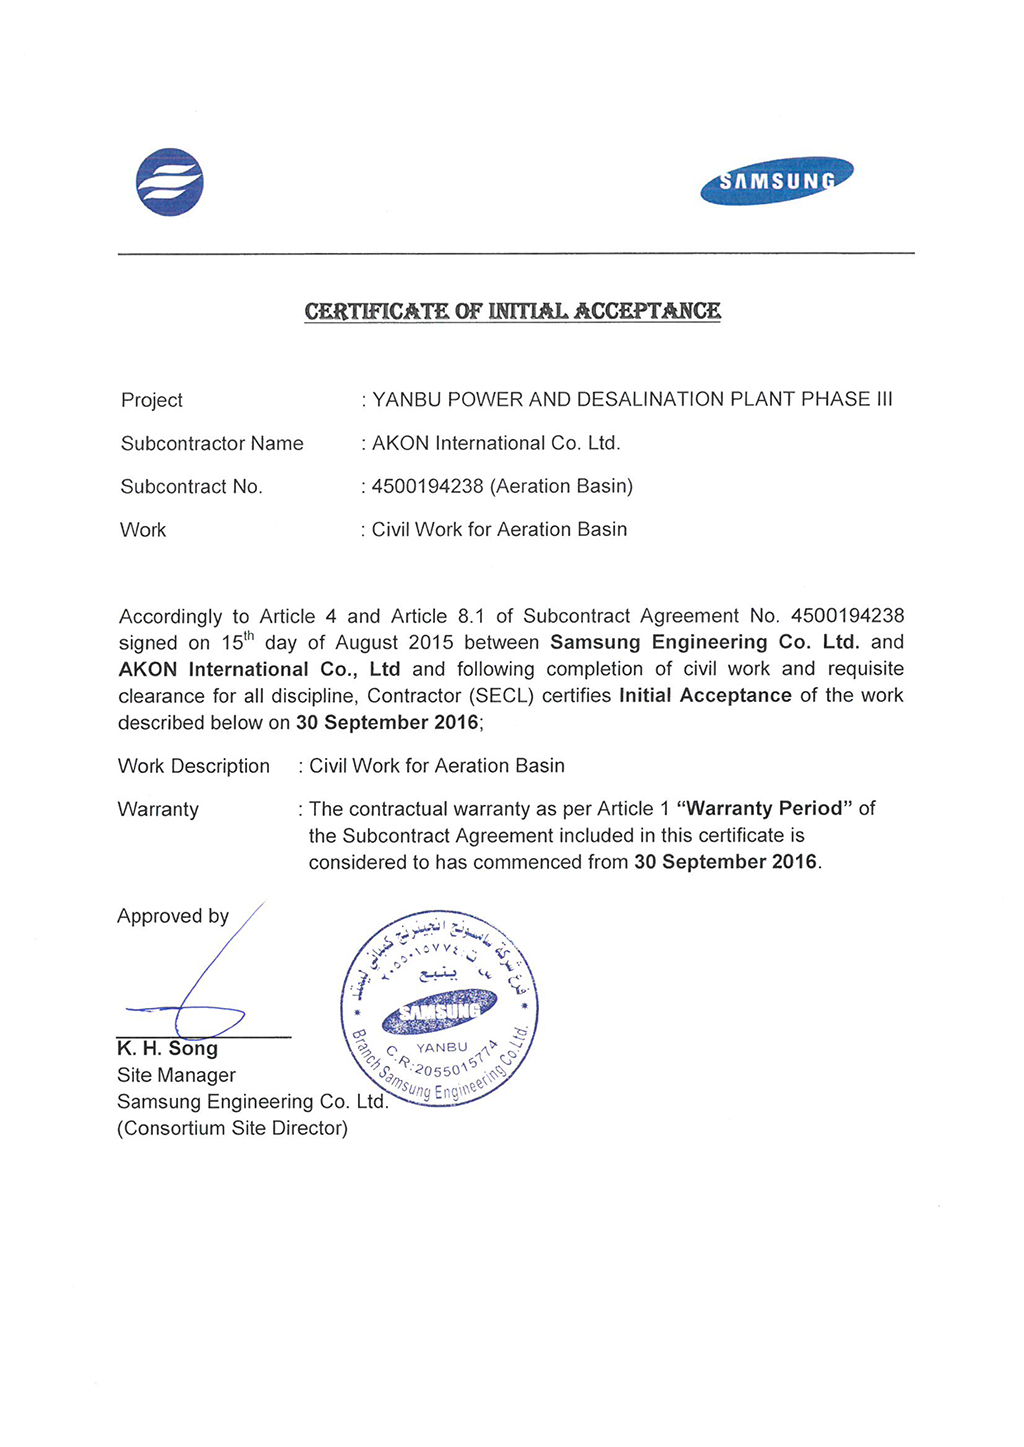 Practical completion certificate profromaas v4 agenda word practical completion certificate profromaas v4 promissory note 7 job completion certificate ypr016 2 practical completion certificate xflitez Image collections